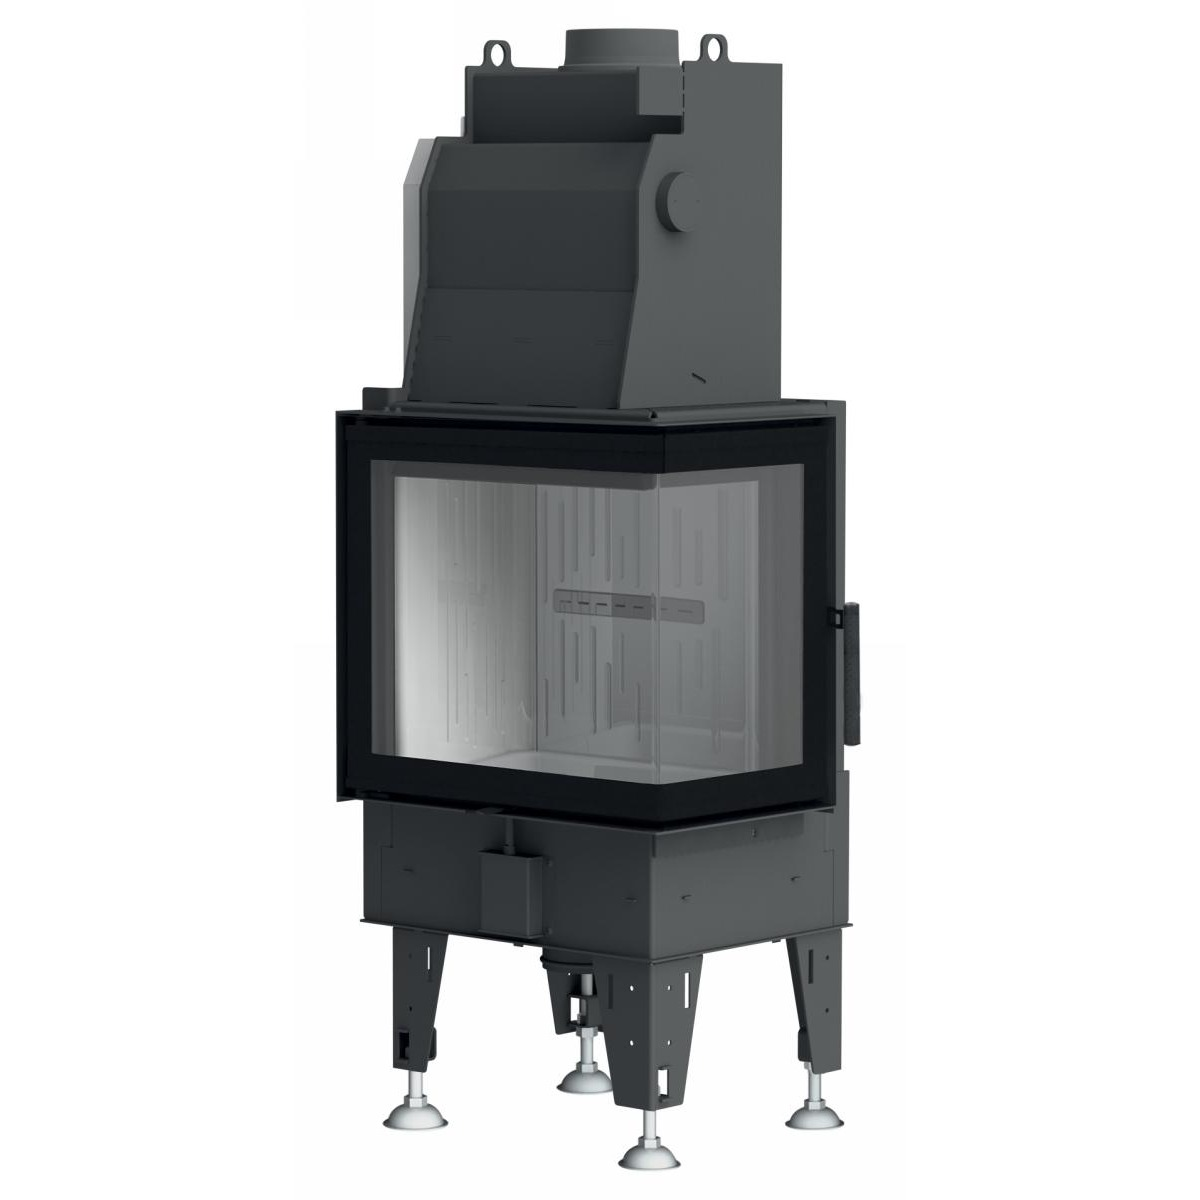 BeF Aquatic WH 65 CP boiler fireplace insert